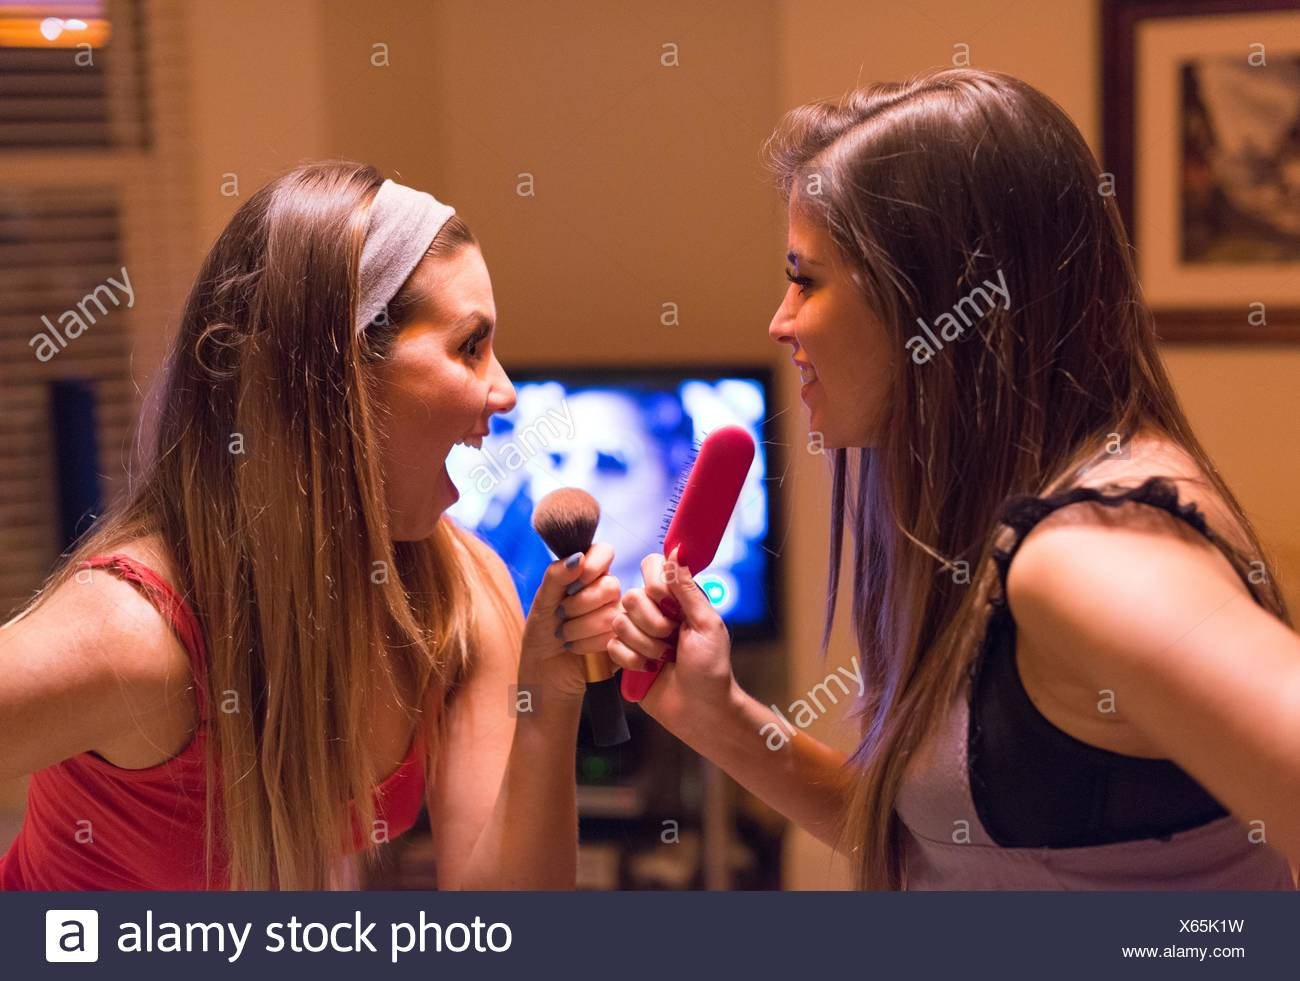 Two young women, singing into hair and make-up brushes - Stock Image